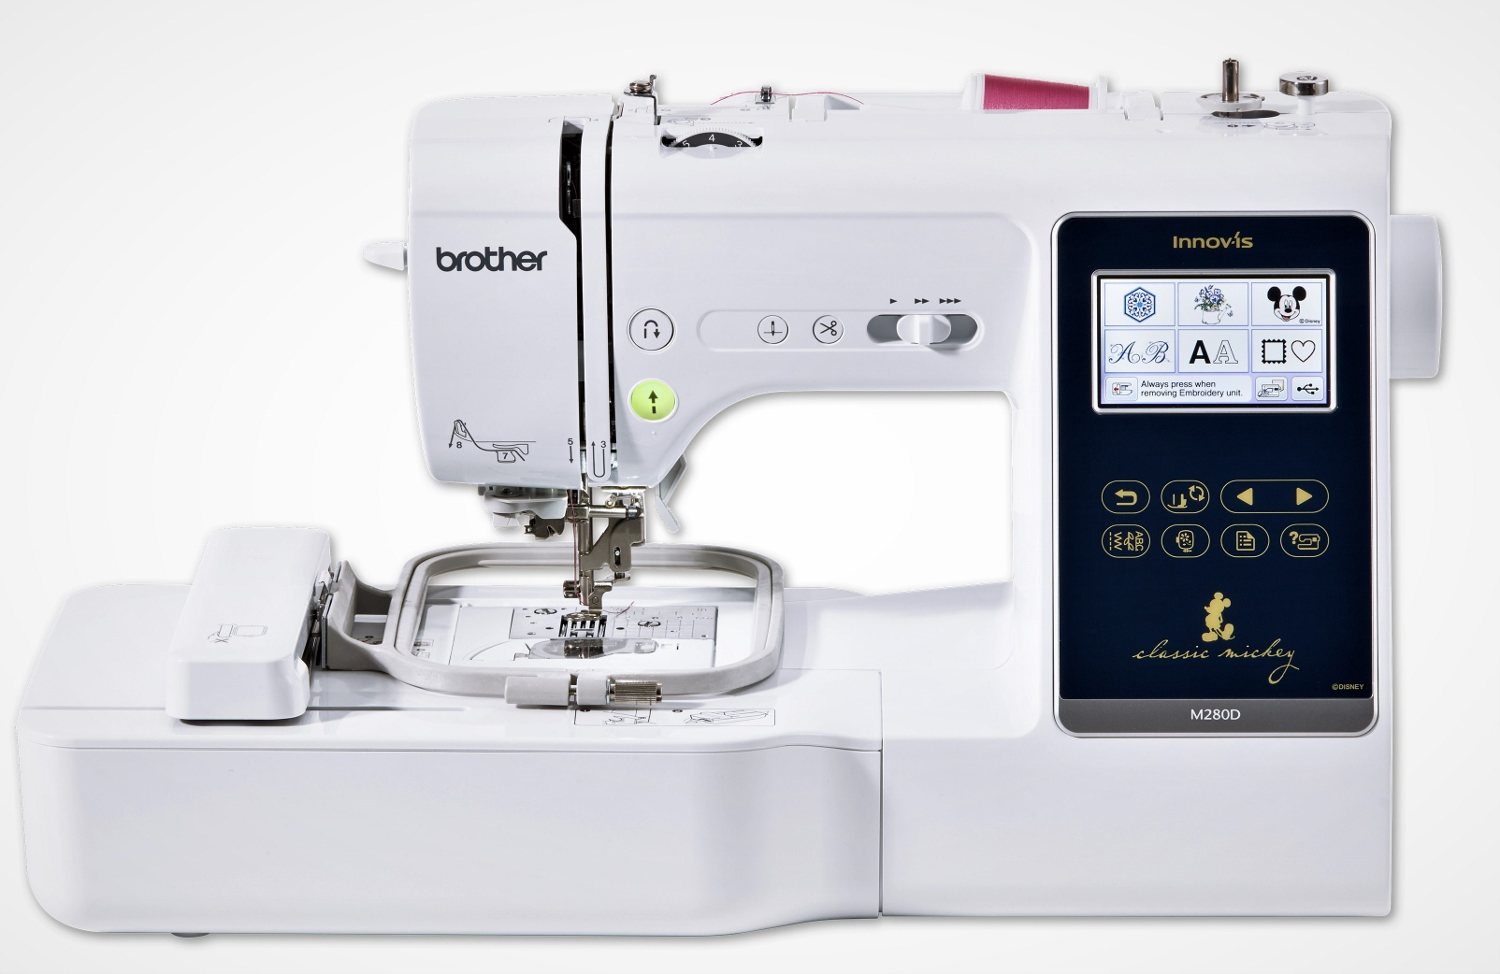 Innov-is M280D Sewing/Embroidery - Brother - Brother Machines